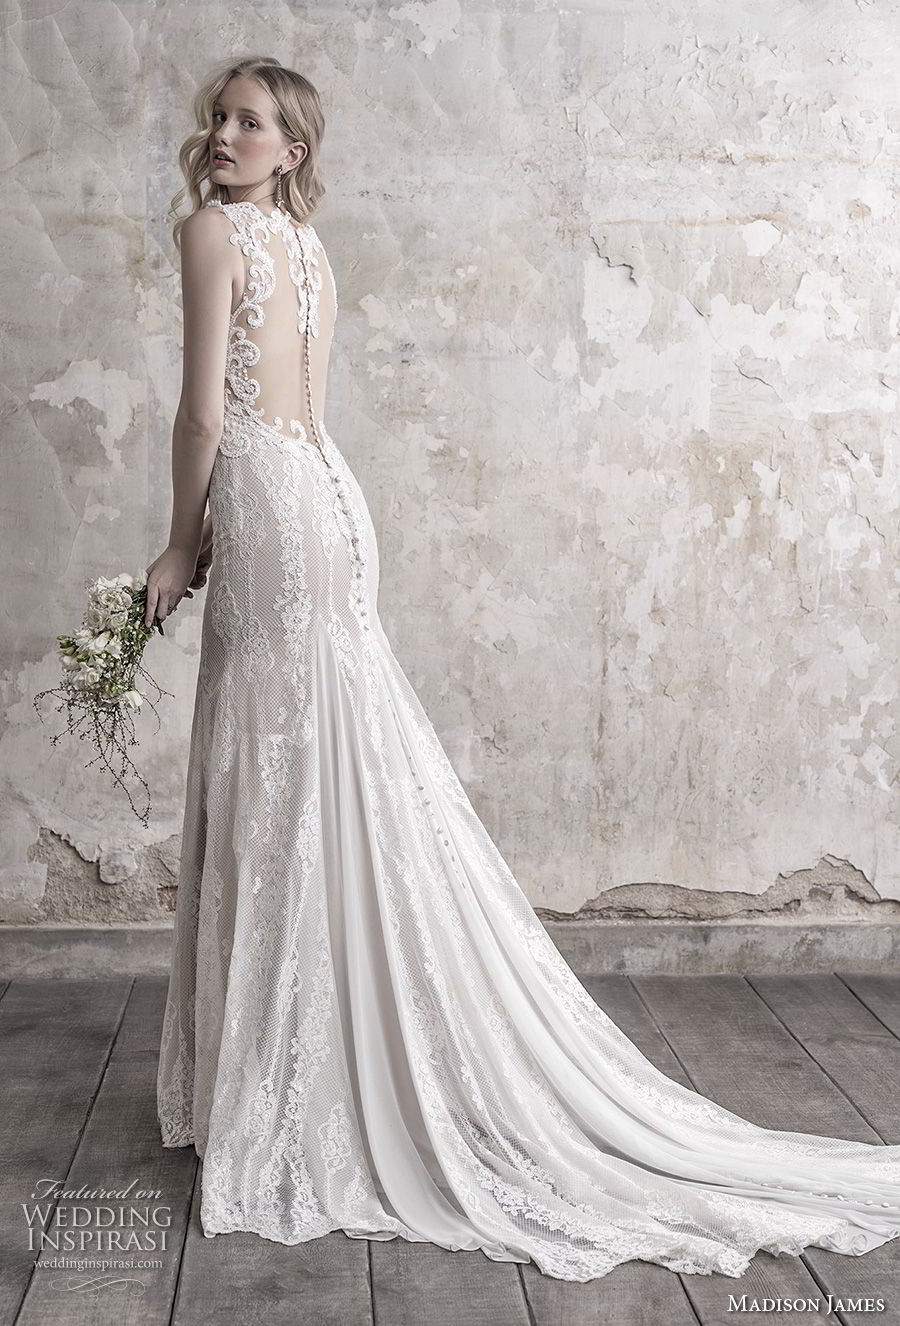 madison james fall 2018 bridal sleeveless thick strap deep sweetheart neckline elegant sheath wedding dress sheer button back chapel train (15) bv